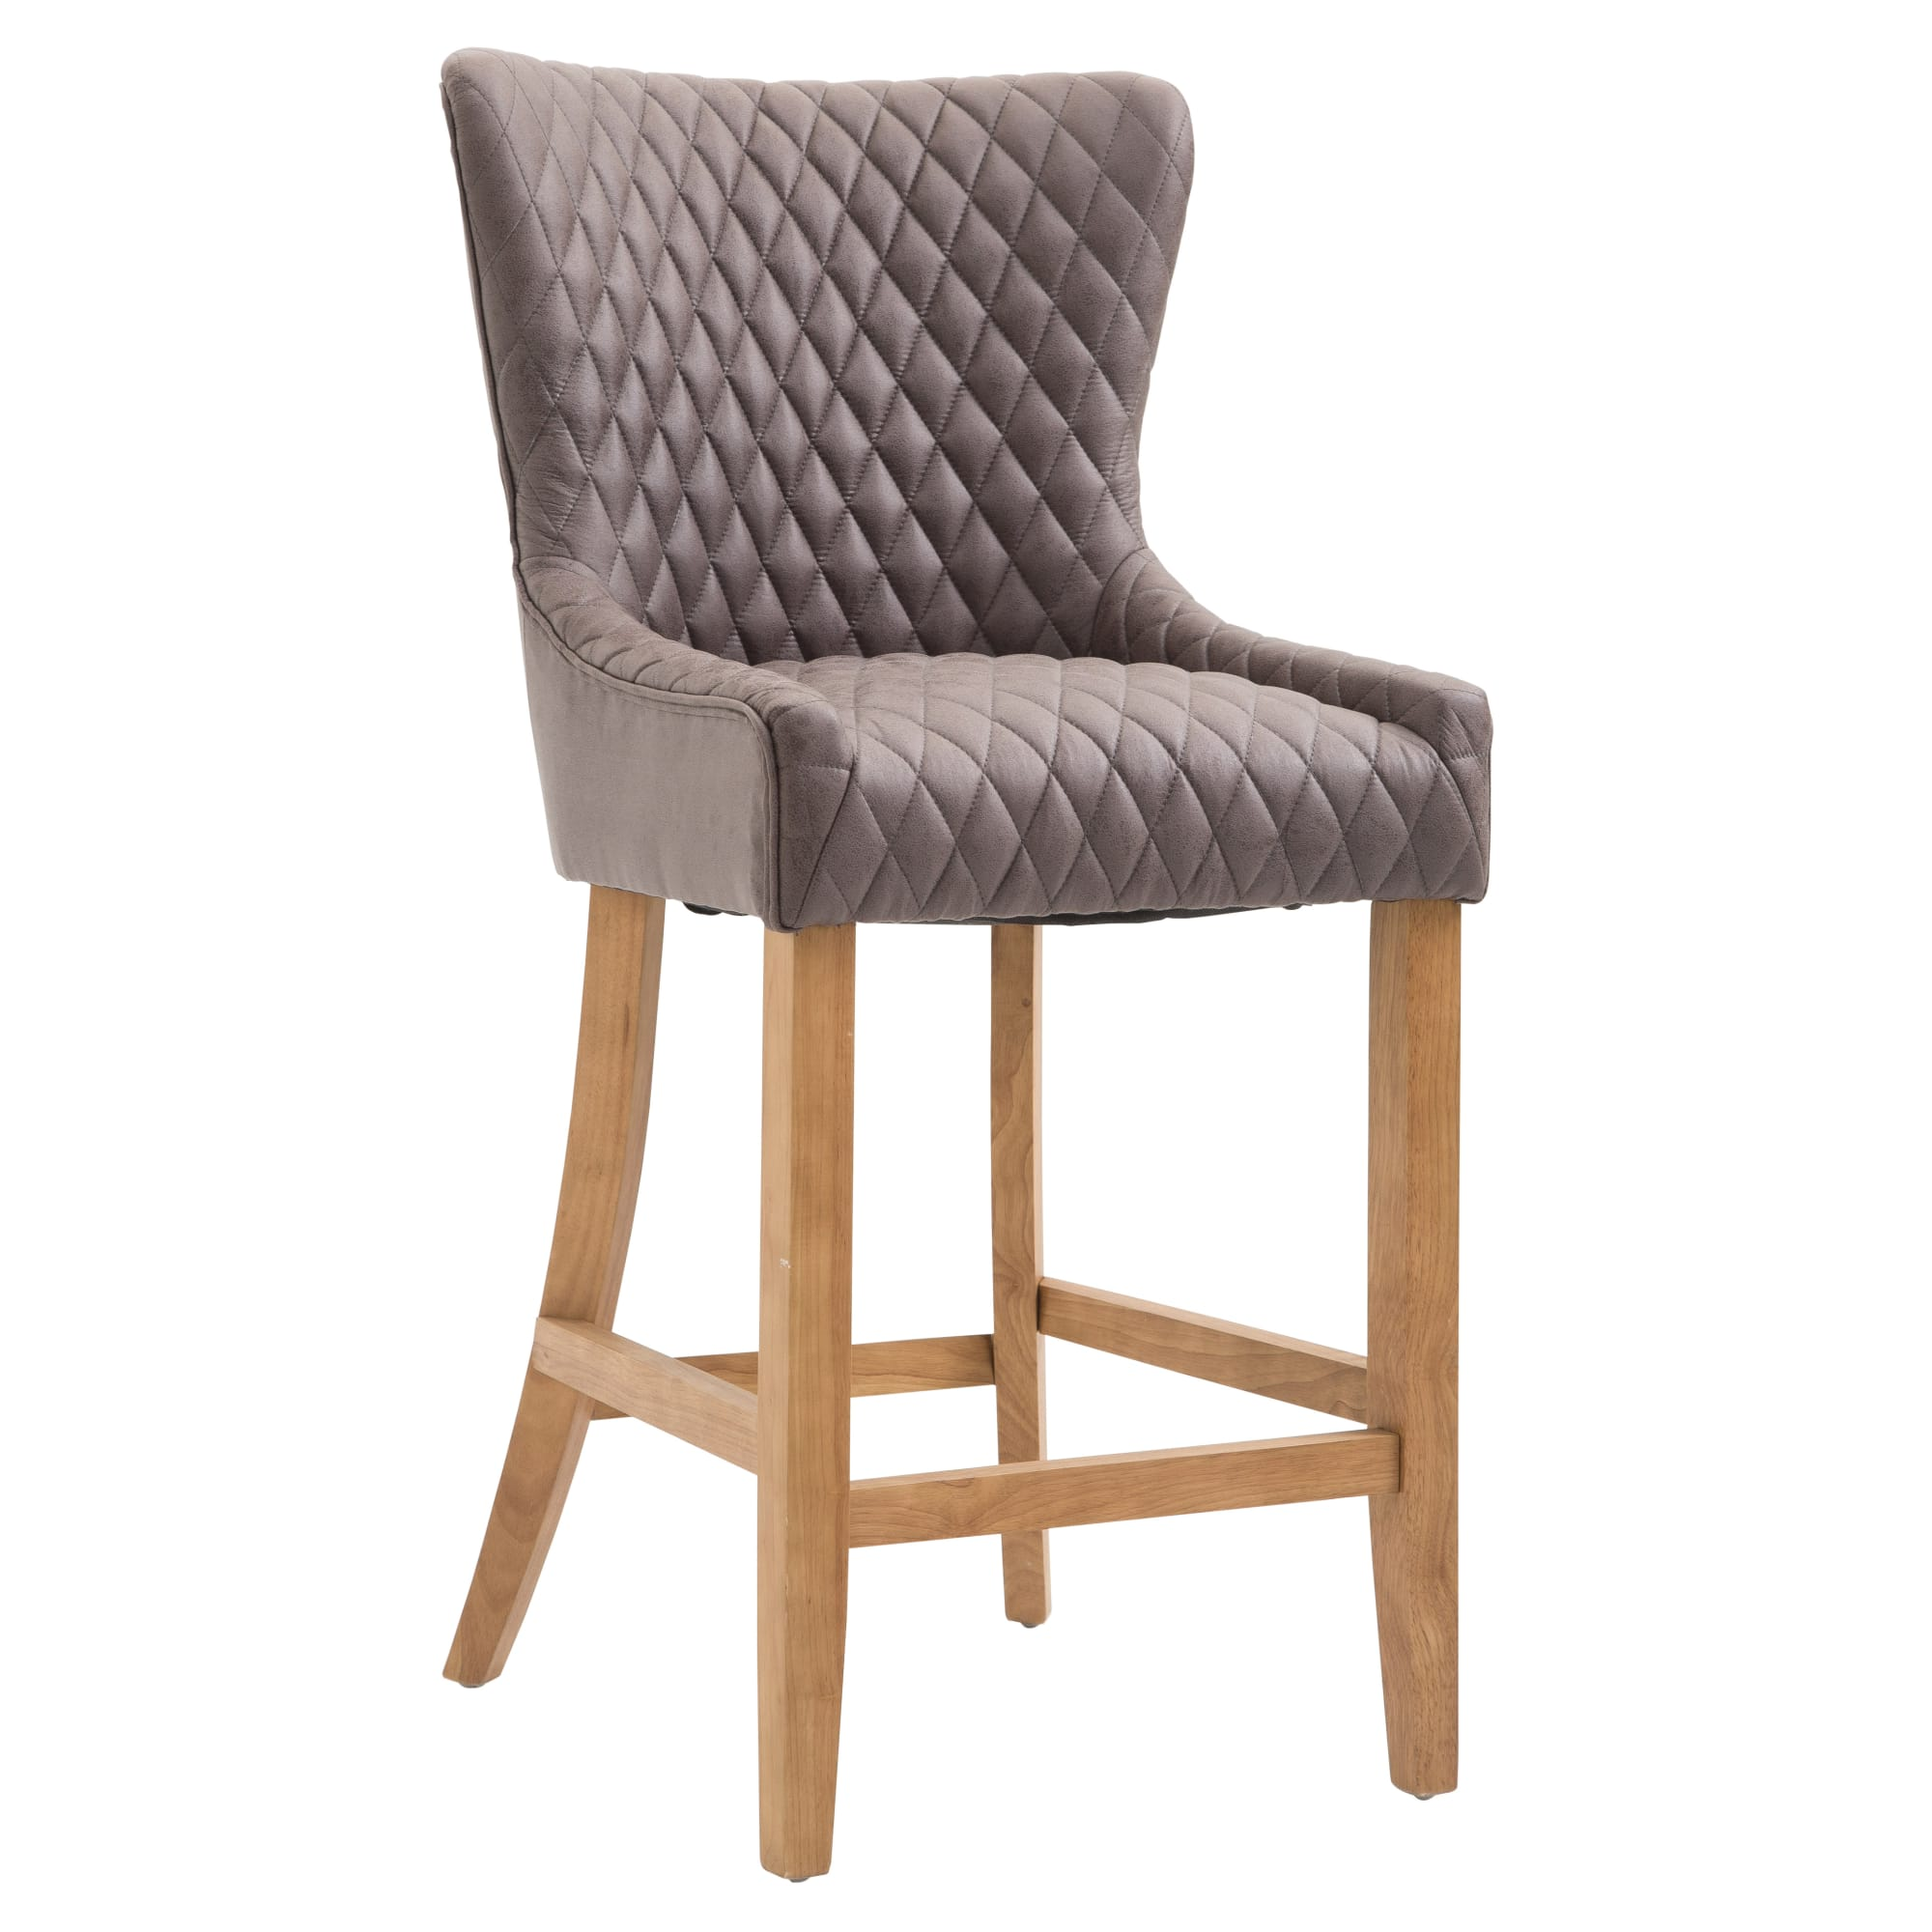 Marta Upholstered Bar Stool